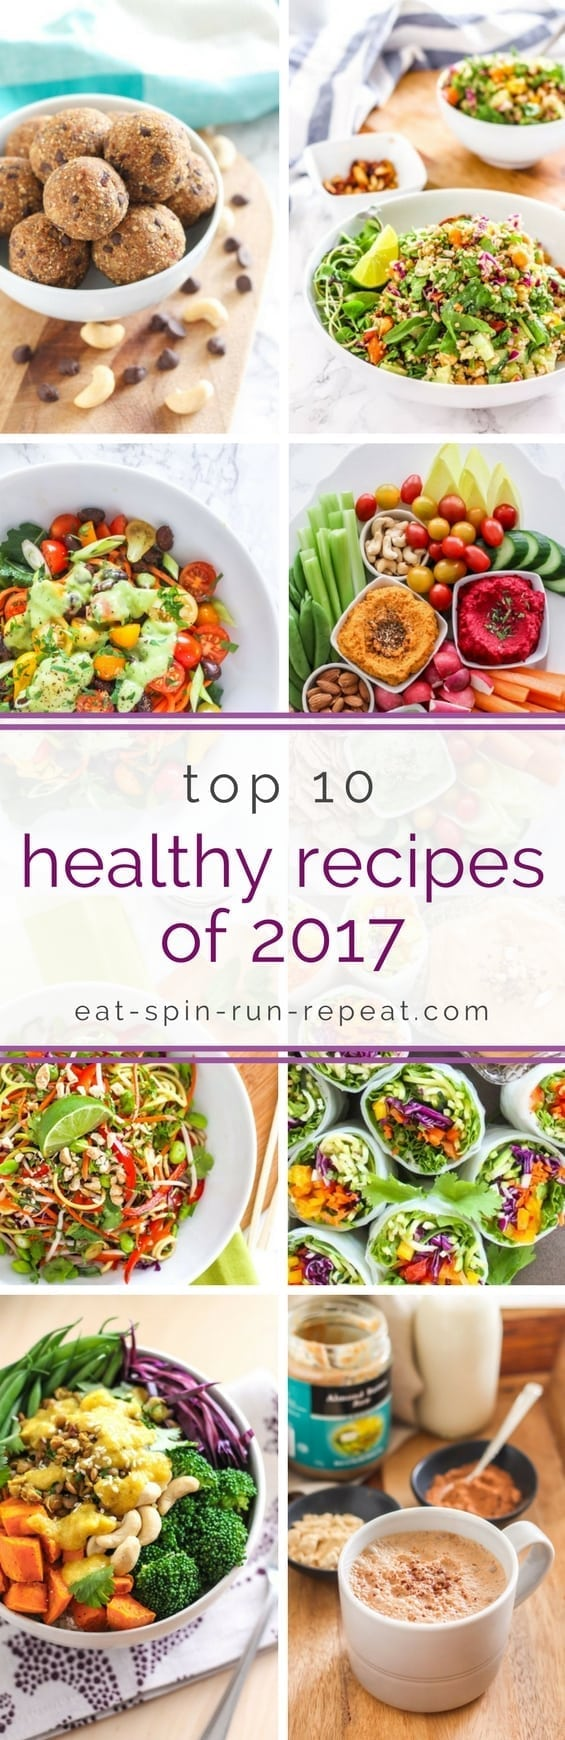 Top 10 Healthy Recipes of 2017 || #eatclean #healthy #mealprep #nutrition || Angela Simpson, Eat Spin Run Repeat